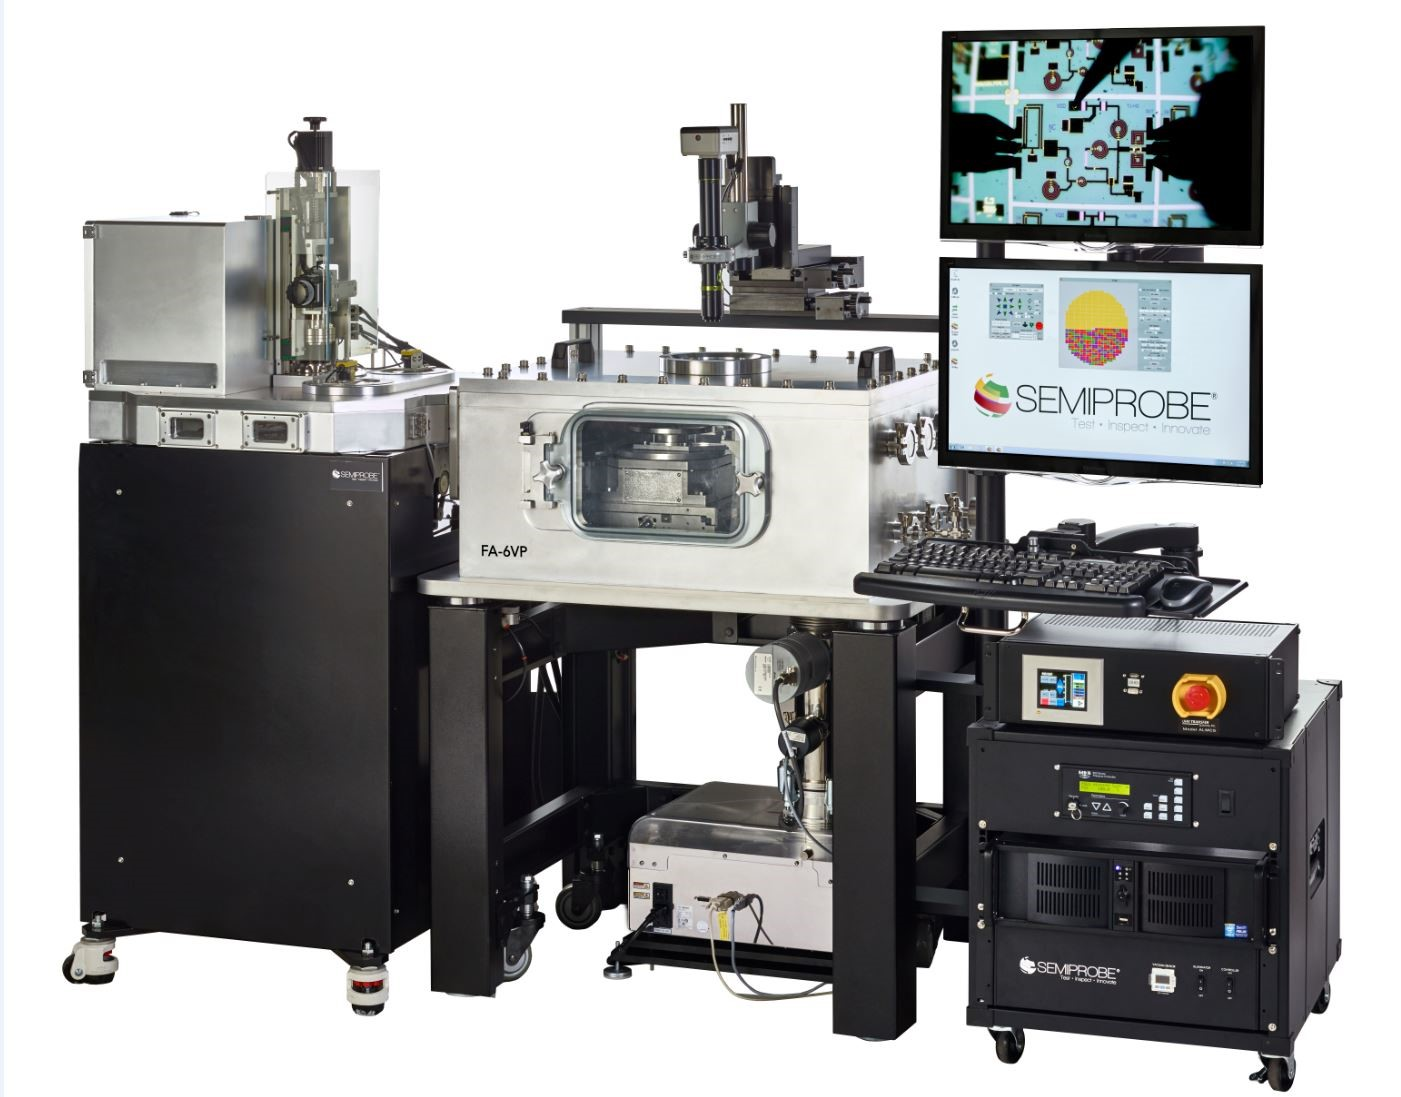 Fully Automated Vacuum Prober for MEMS Testing